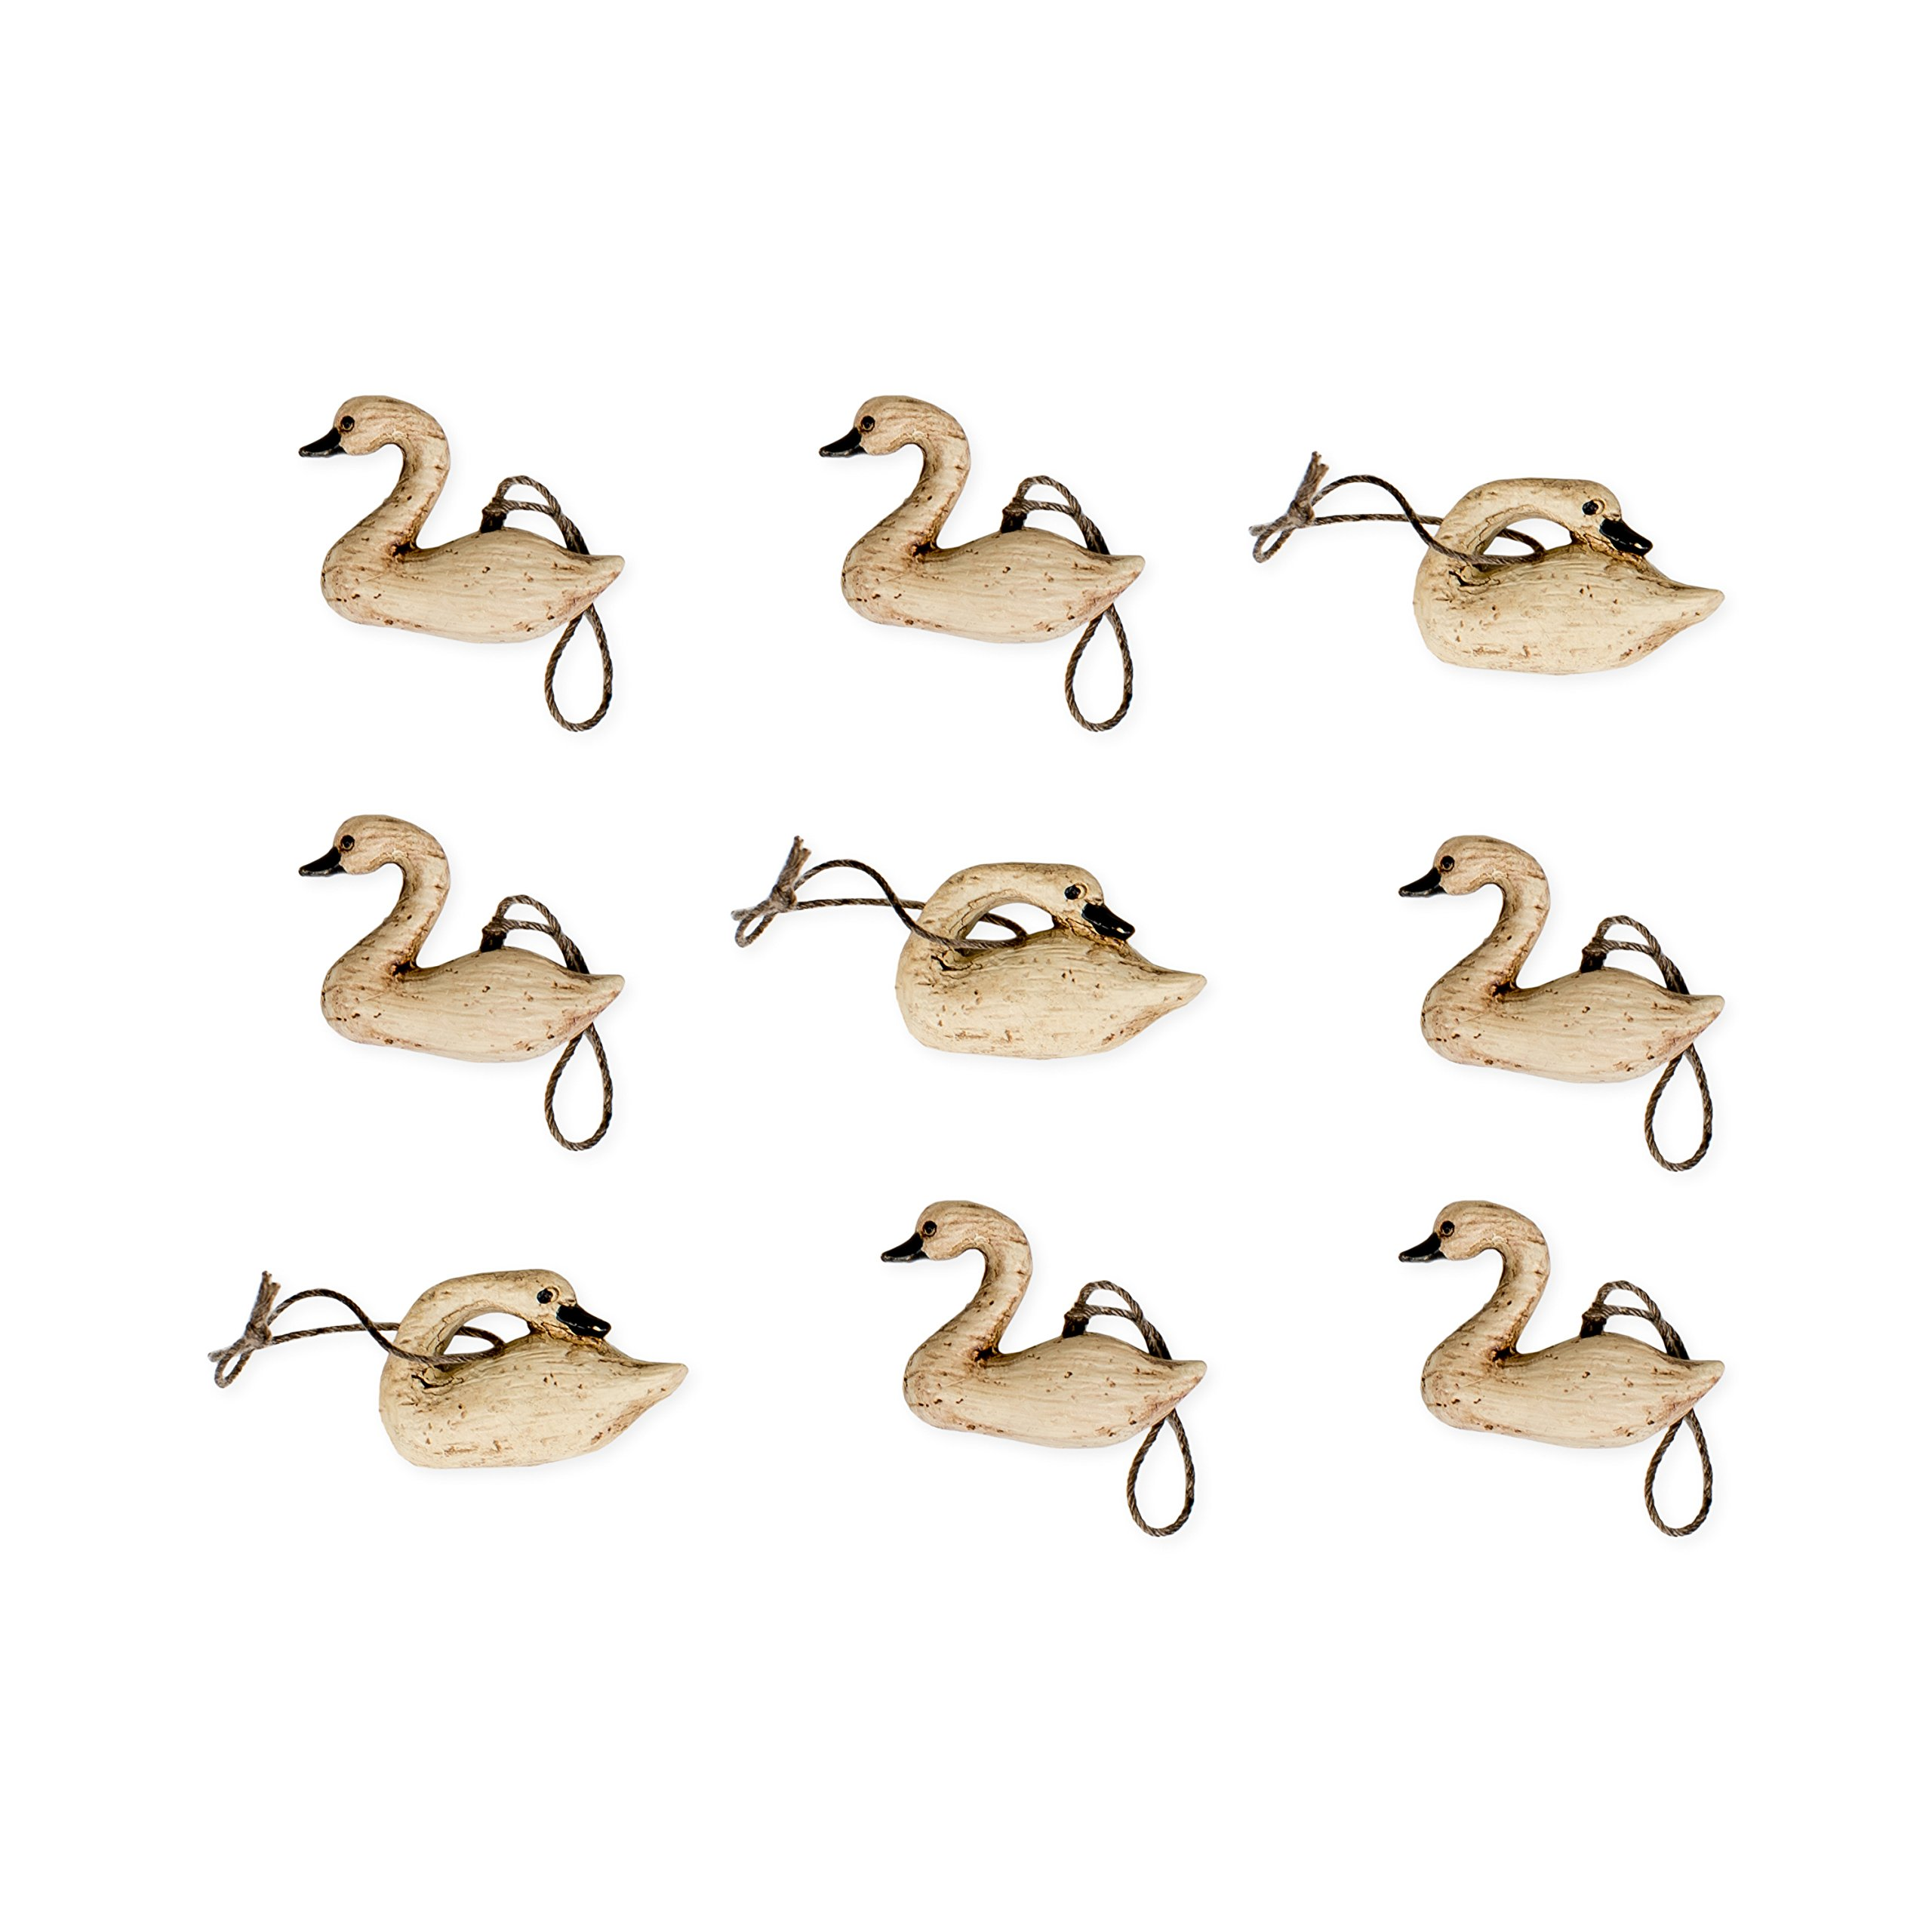 Distressed Wood Look Miniature Swan 1 inch Christmas Ornament Set of 9